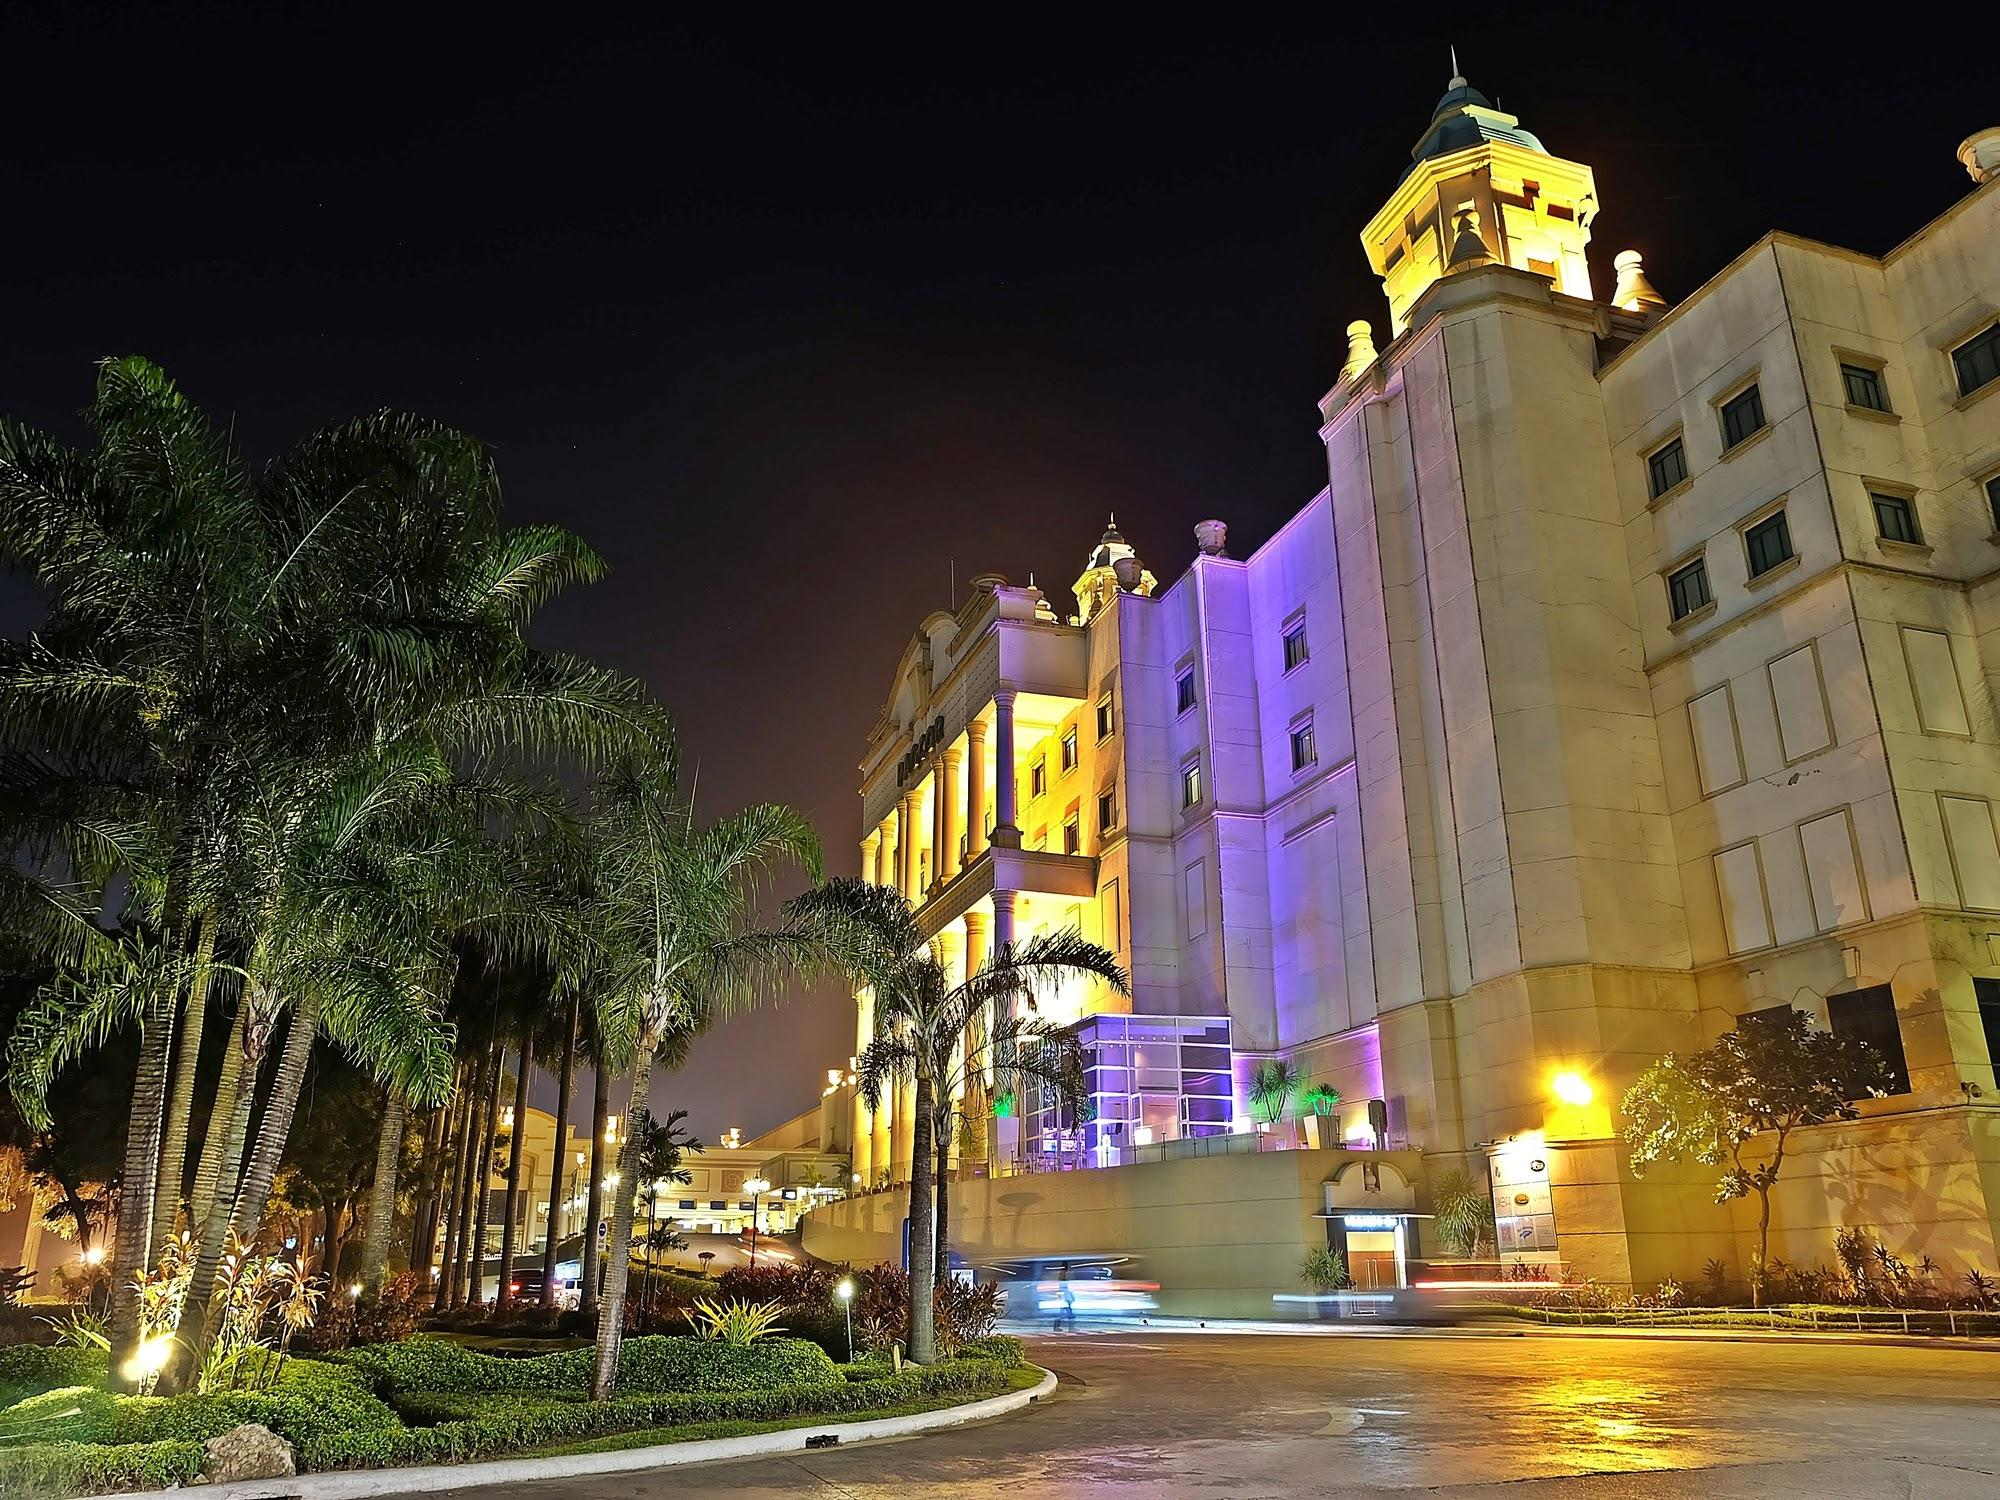 Waterfront Cebu City Hotel and Casino Cebu - Tampilan Luar Hotel